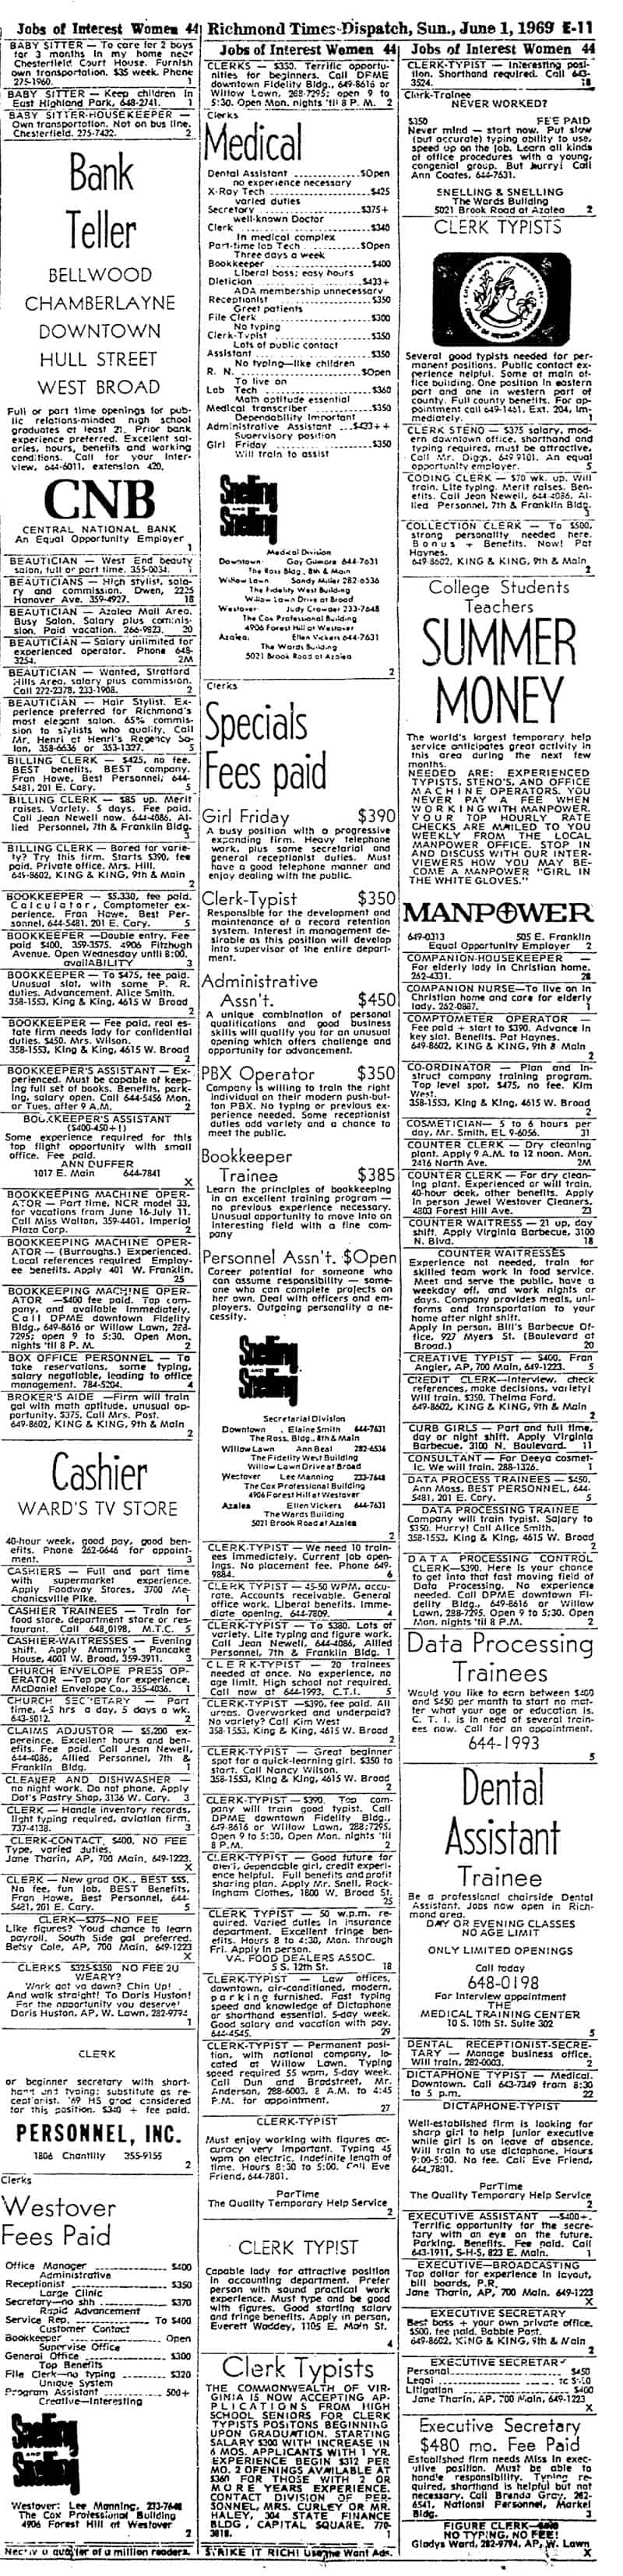 Help Wanted 1969 women From NewsBank database on the Library of Virginia website